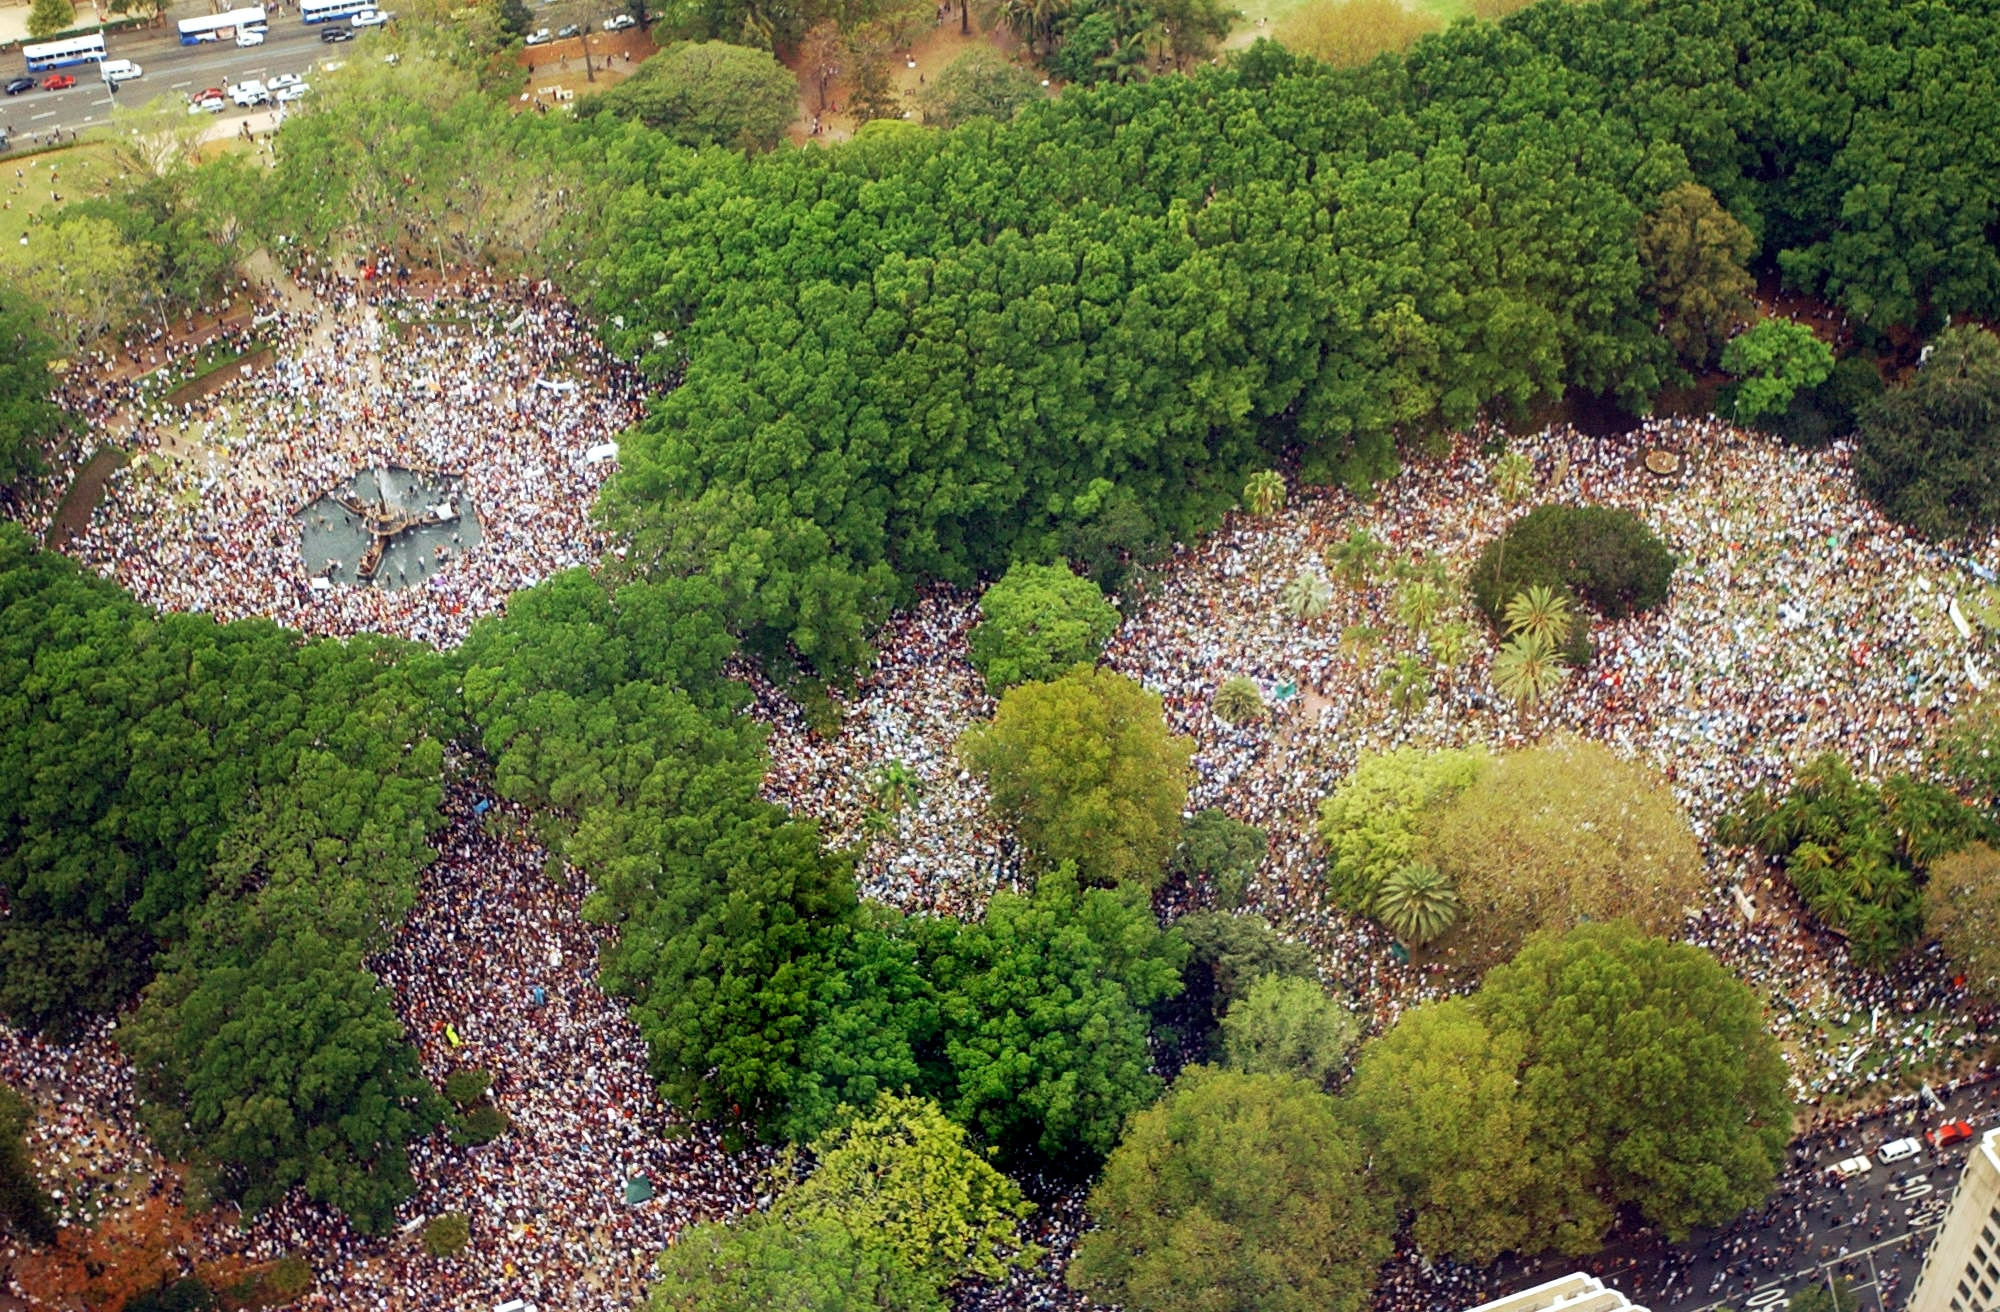 An estimated 250000 protesters marched through Sydney's CBD on 16 February, 2003, against Australia's involvement in Iraq.